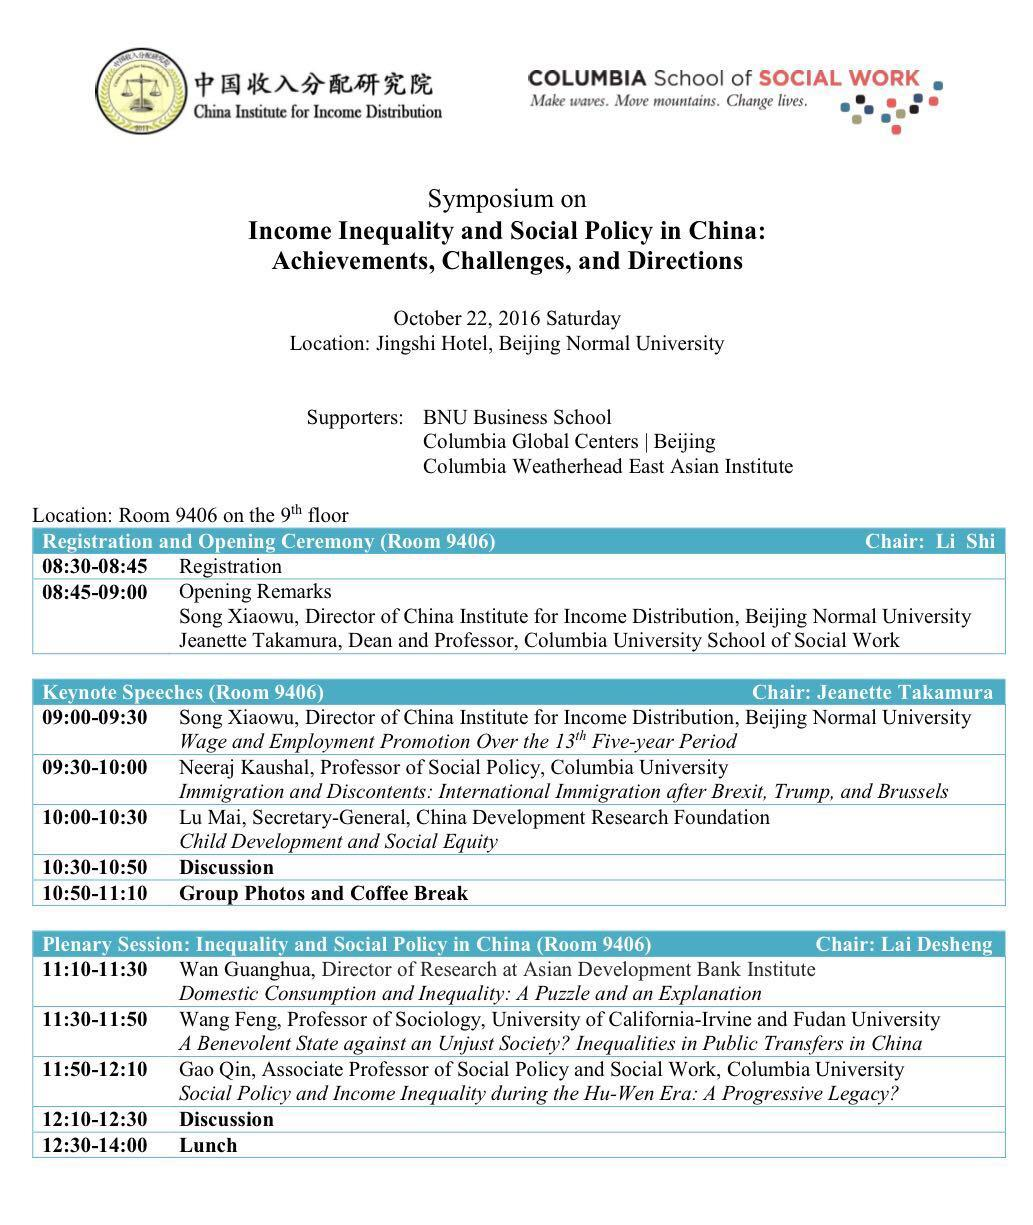 Symposium on Income Inequality and Social Policy in China: Achievements, Challenges, and Directions